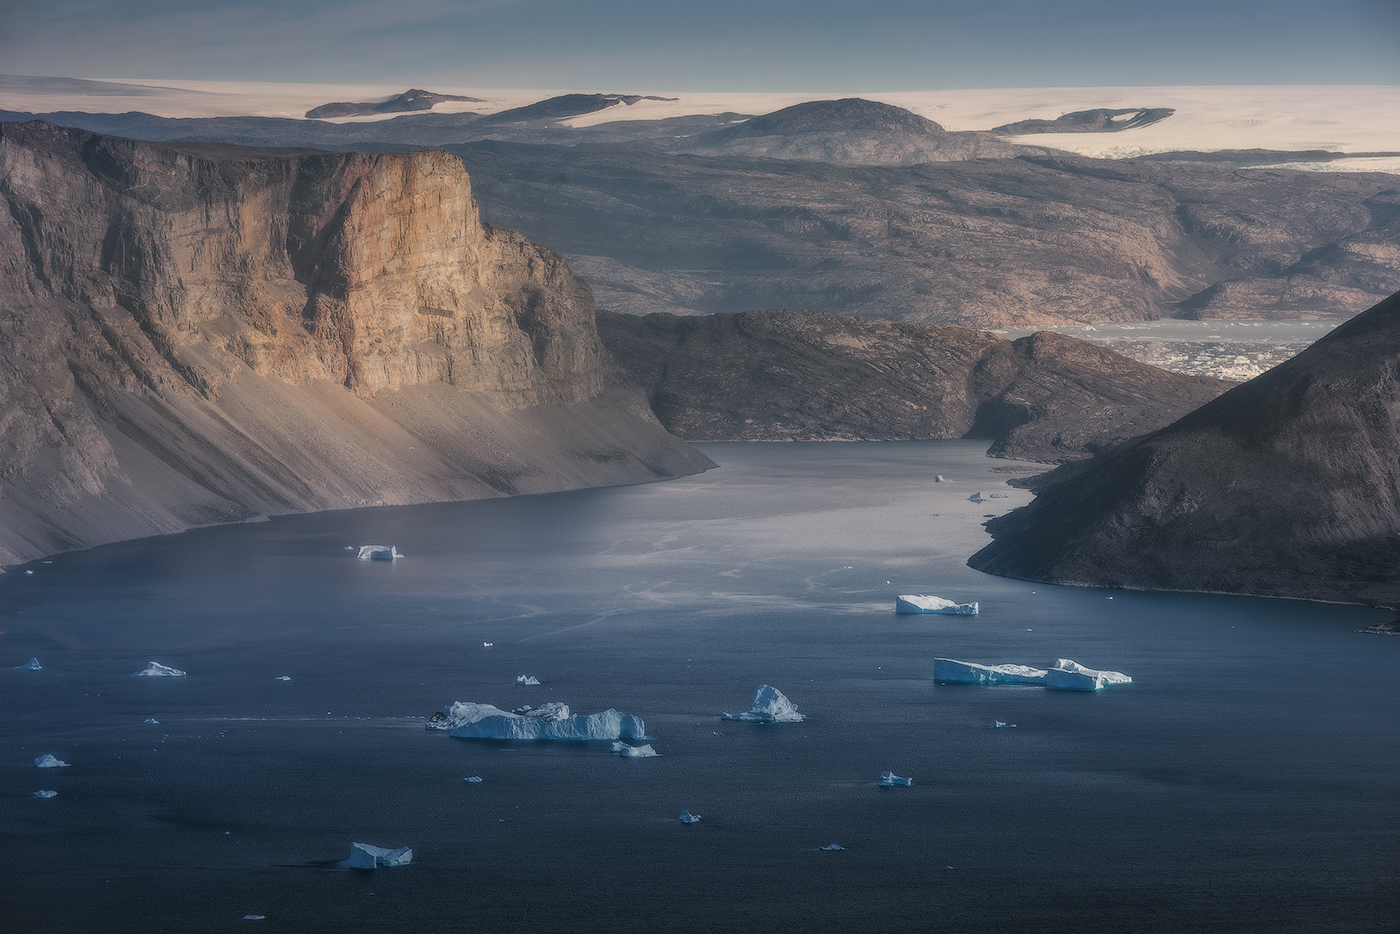 Epic 10 Day Greenland Sailing Trip & Photography Workshop with Transfer from Reykjavik - day 4